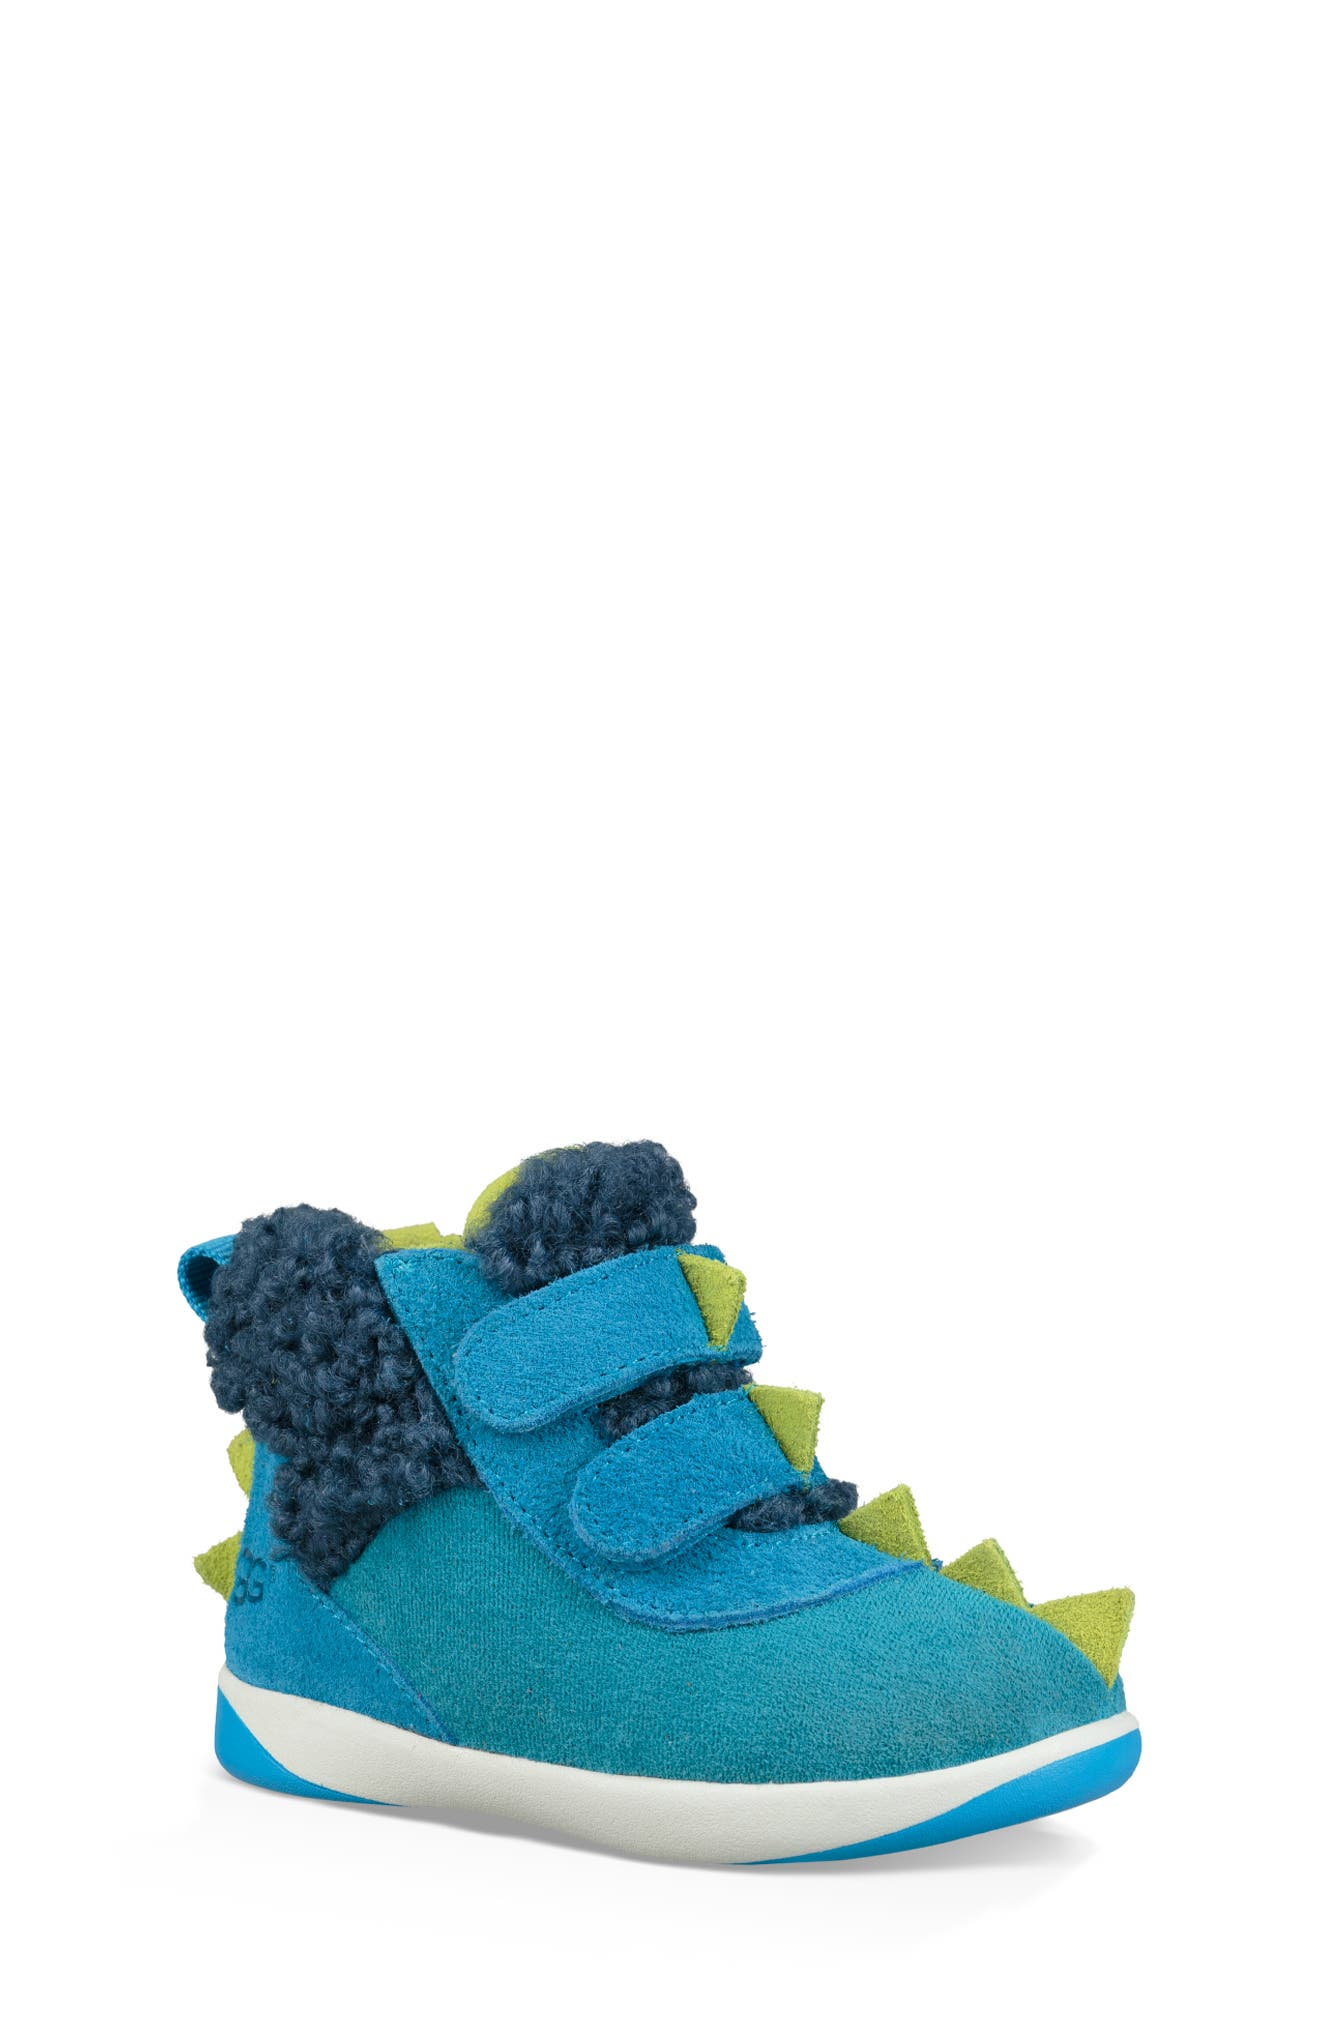 Dydo Pritchard Bootie,                             Main thumbnail 1, color,                             BLUE MULTI